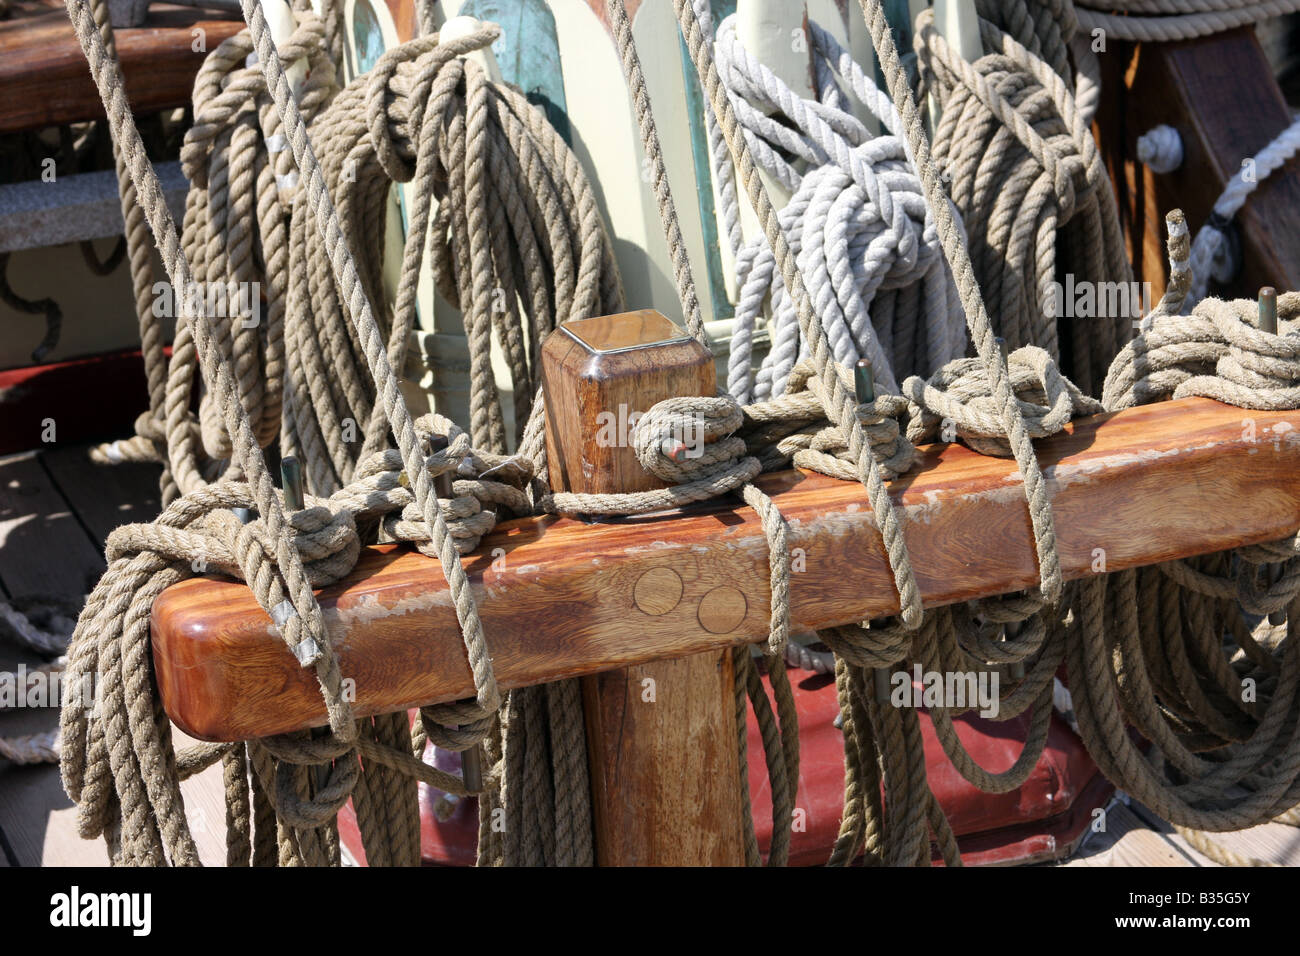 The rope rigging of the Pride of Baltimore ship at the Maritime Festiville in Port Washington Wisconsin - Stock Image